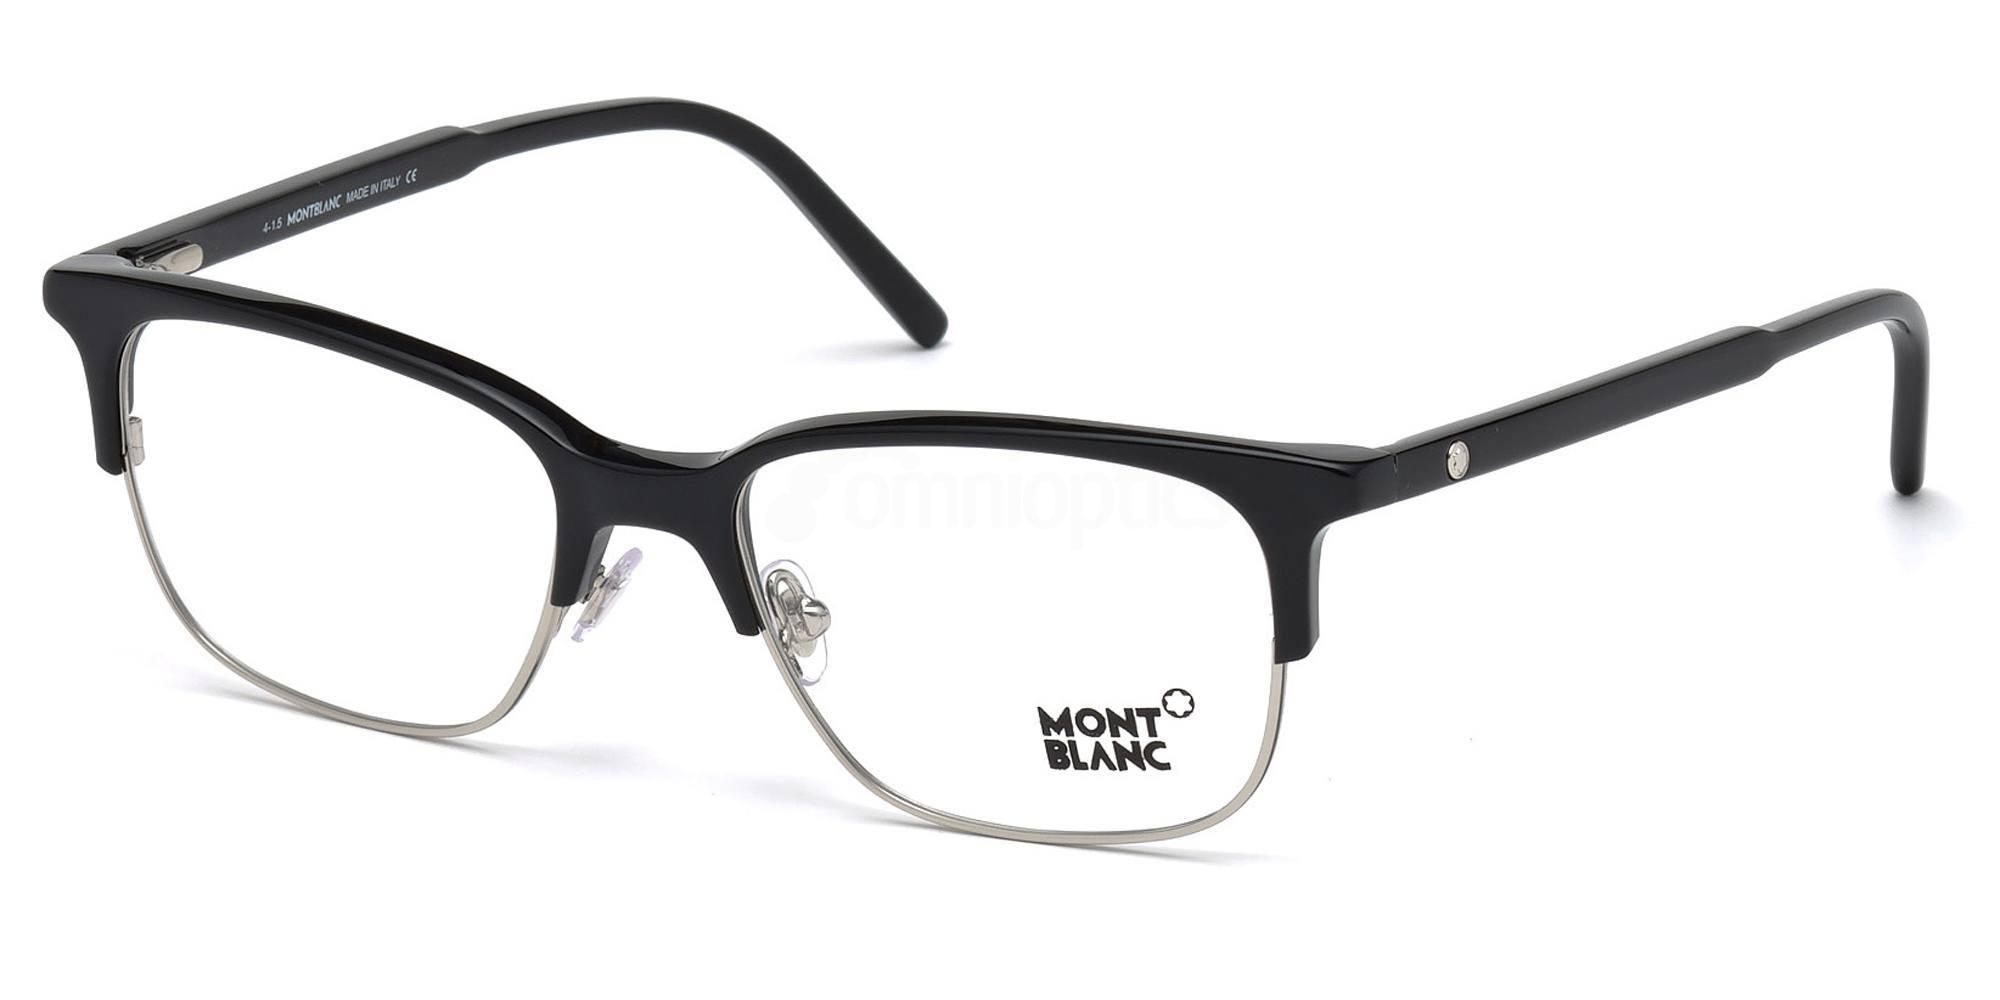 001 MB0552 Glasses, Mont Blanc